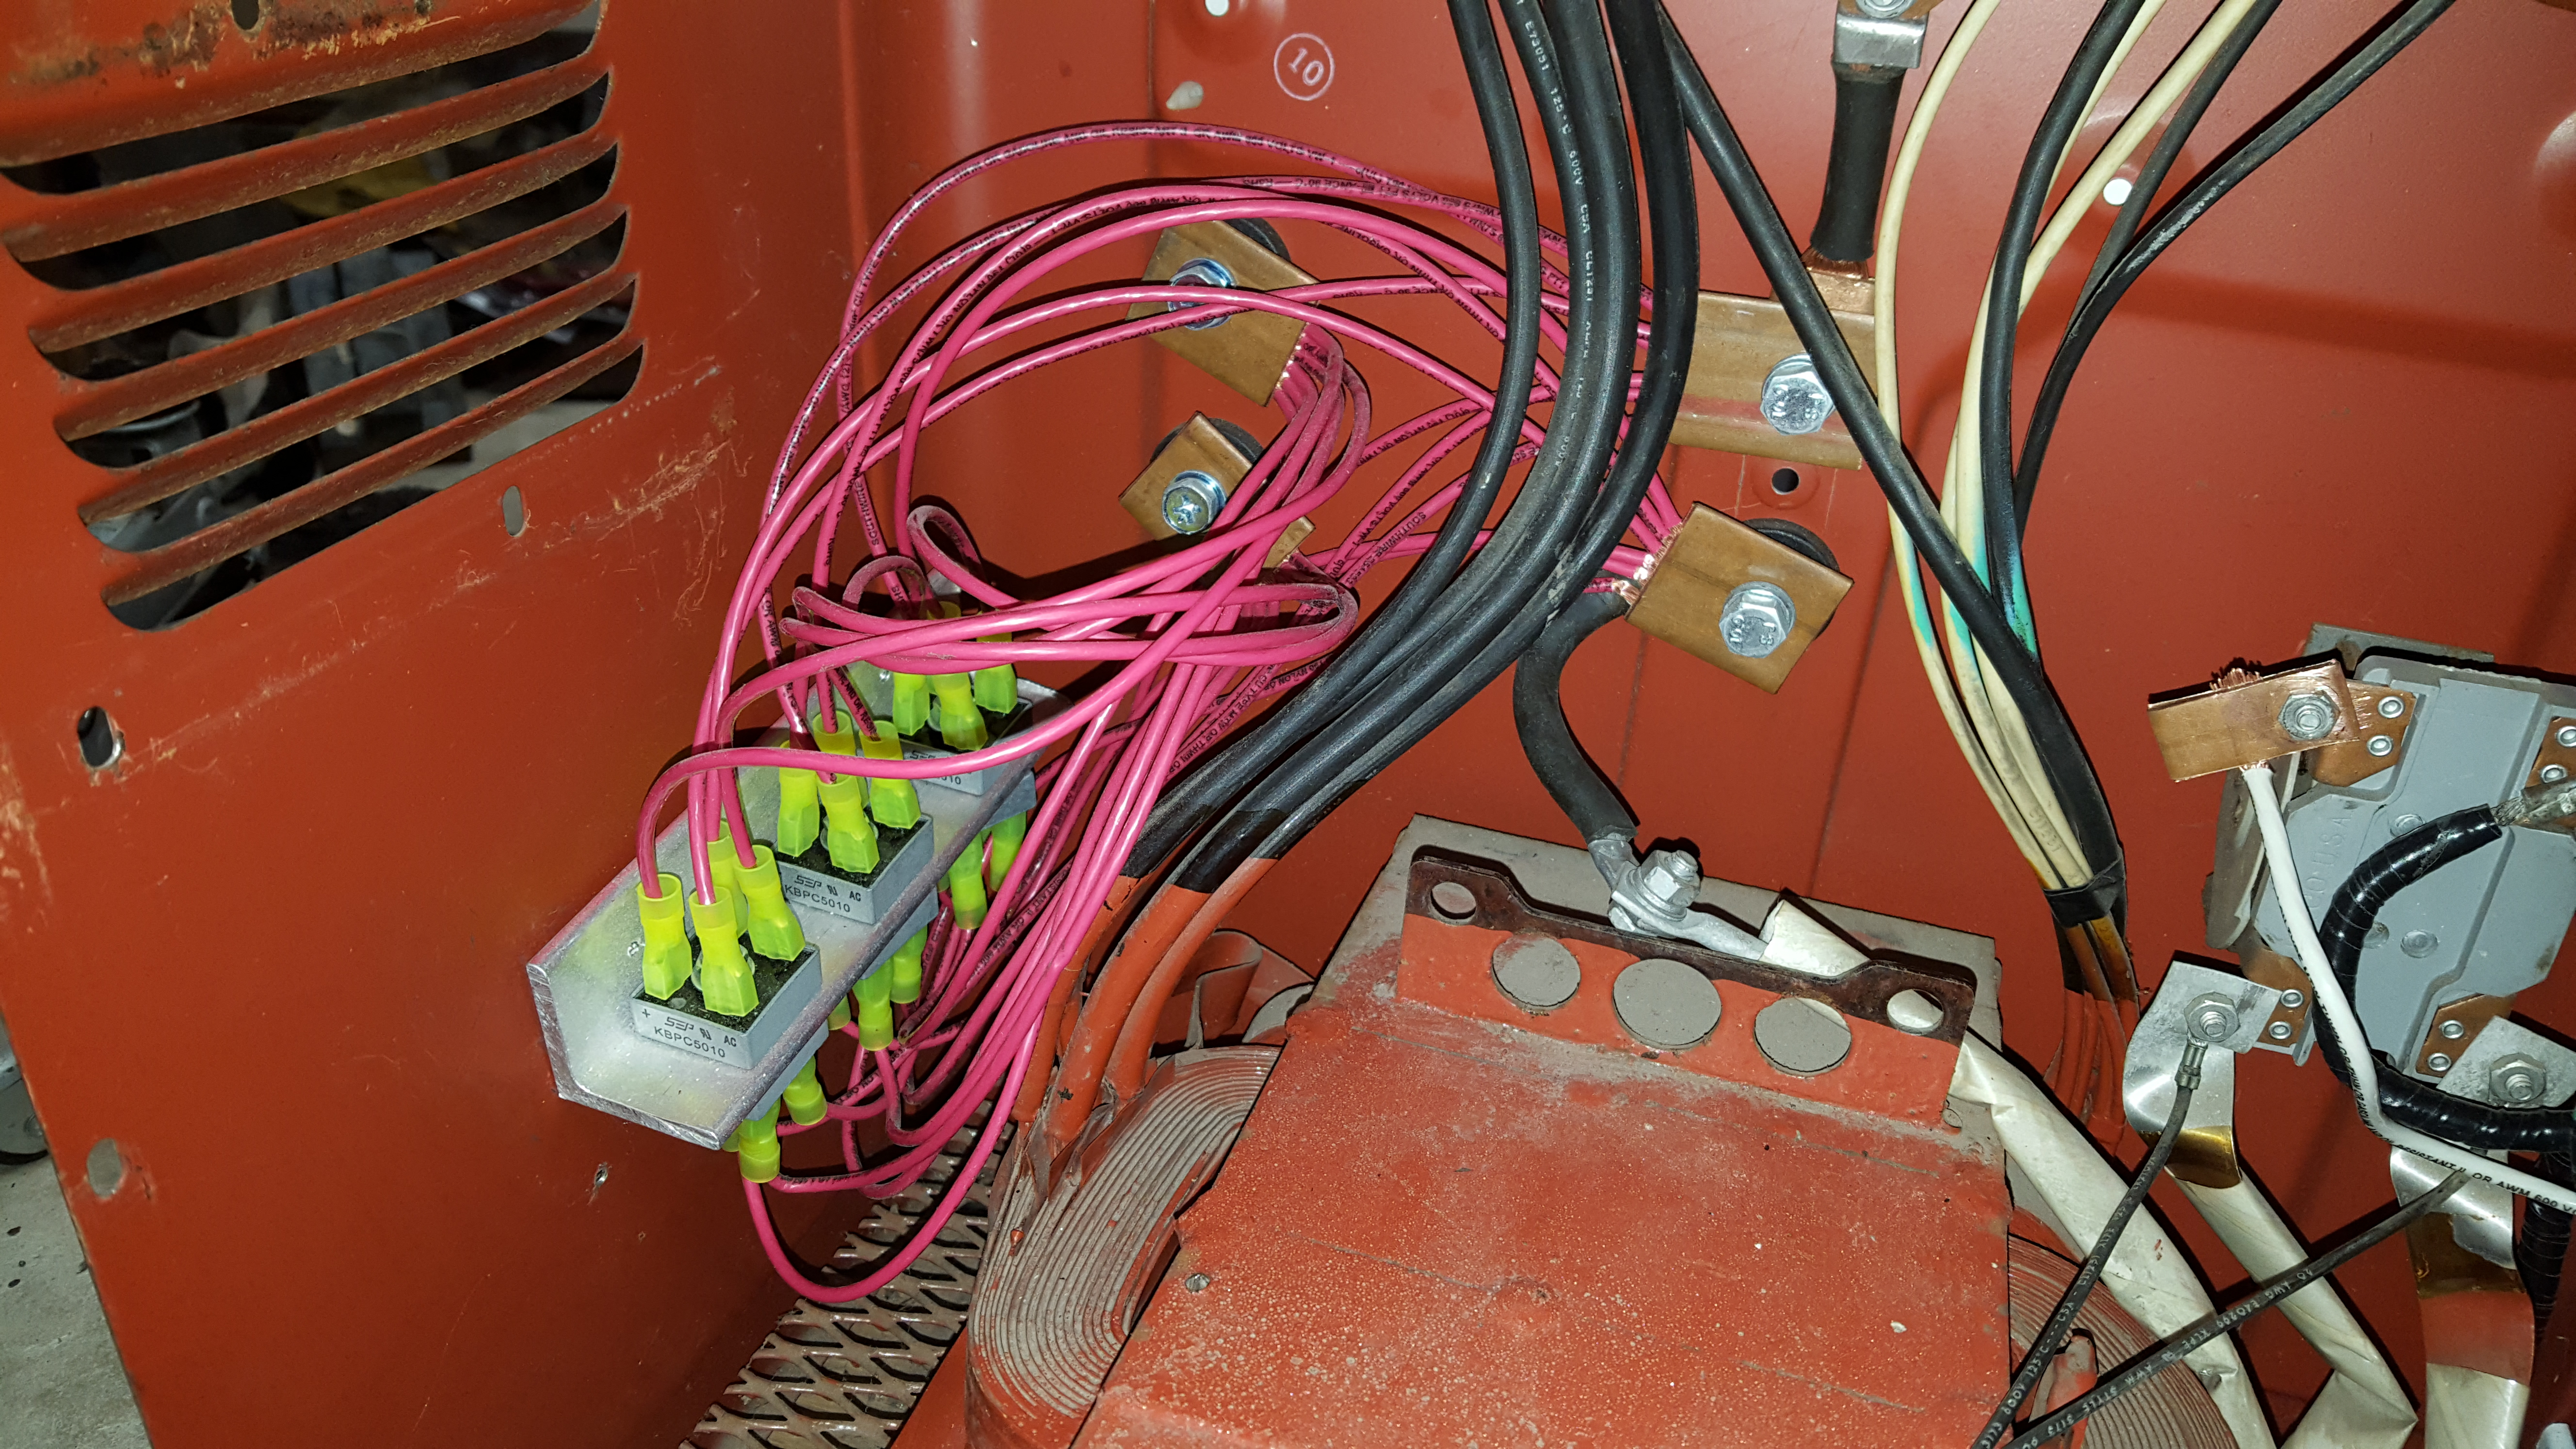 Ac 225 Welder Amperage Control With Scrs Next Project Potentiometer Wiring The Rectifier Bank Getting Its Input From Lugs And Outputting Rectified Current To Dc